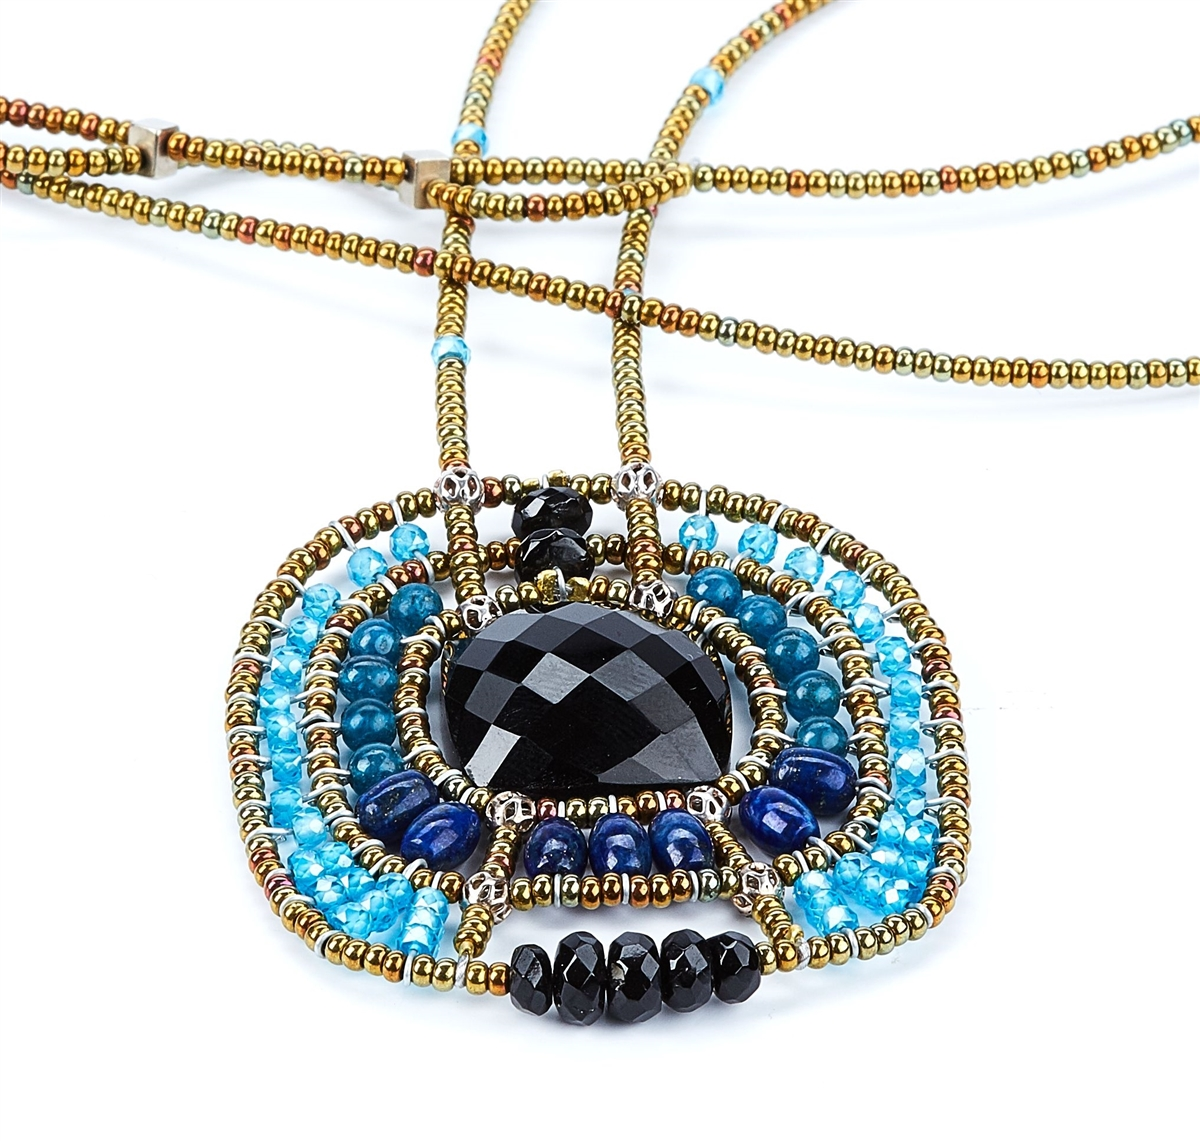 Pendant Necklace By Ziio In Onyx